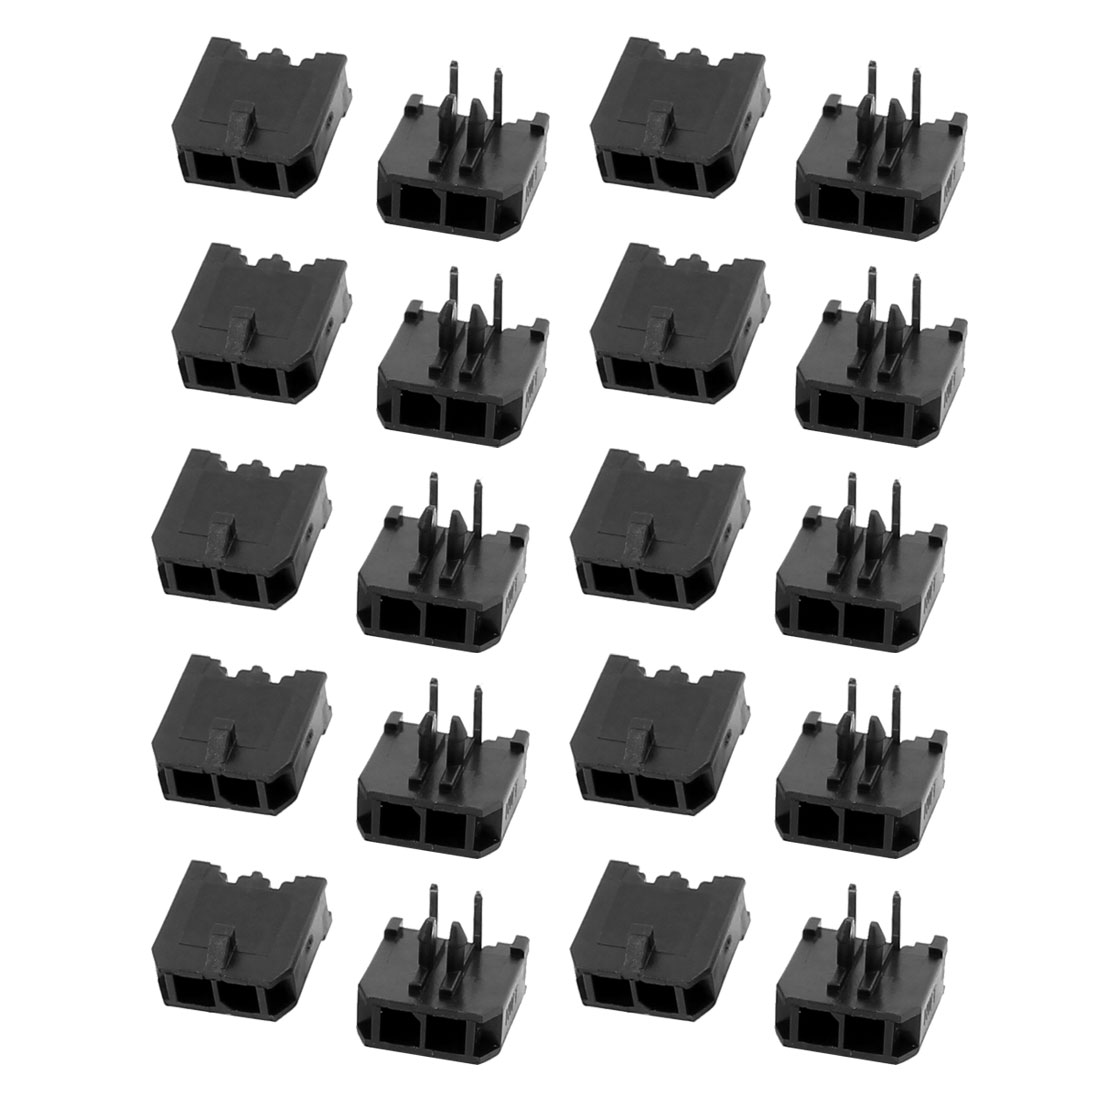 20Pcs Right Angle Single Row 3.0mm Pitch 2 Pin Connector Female Header - image 3 de 3